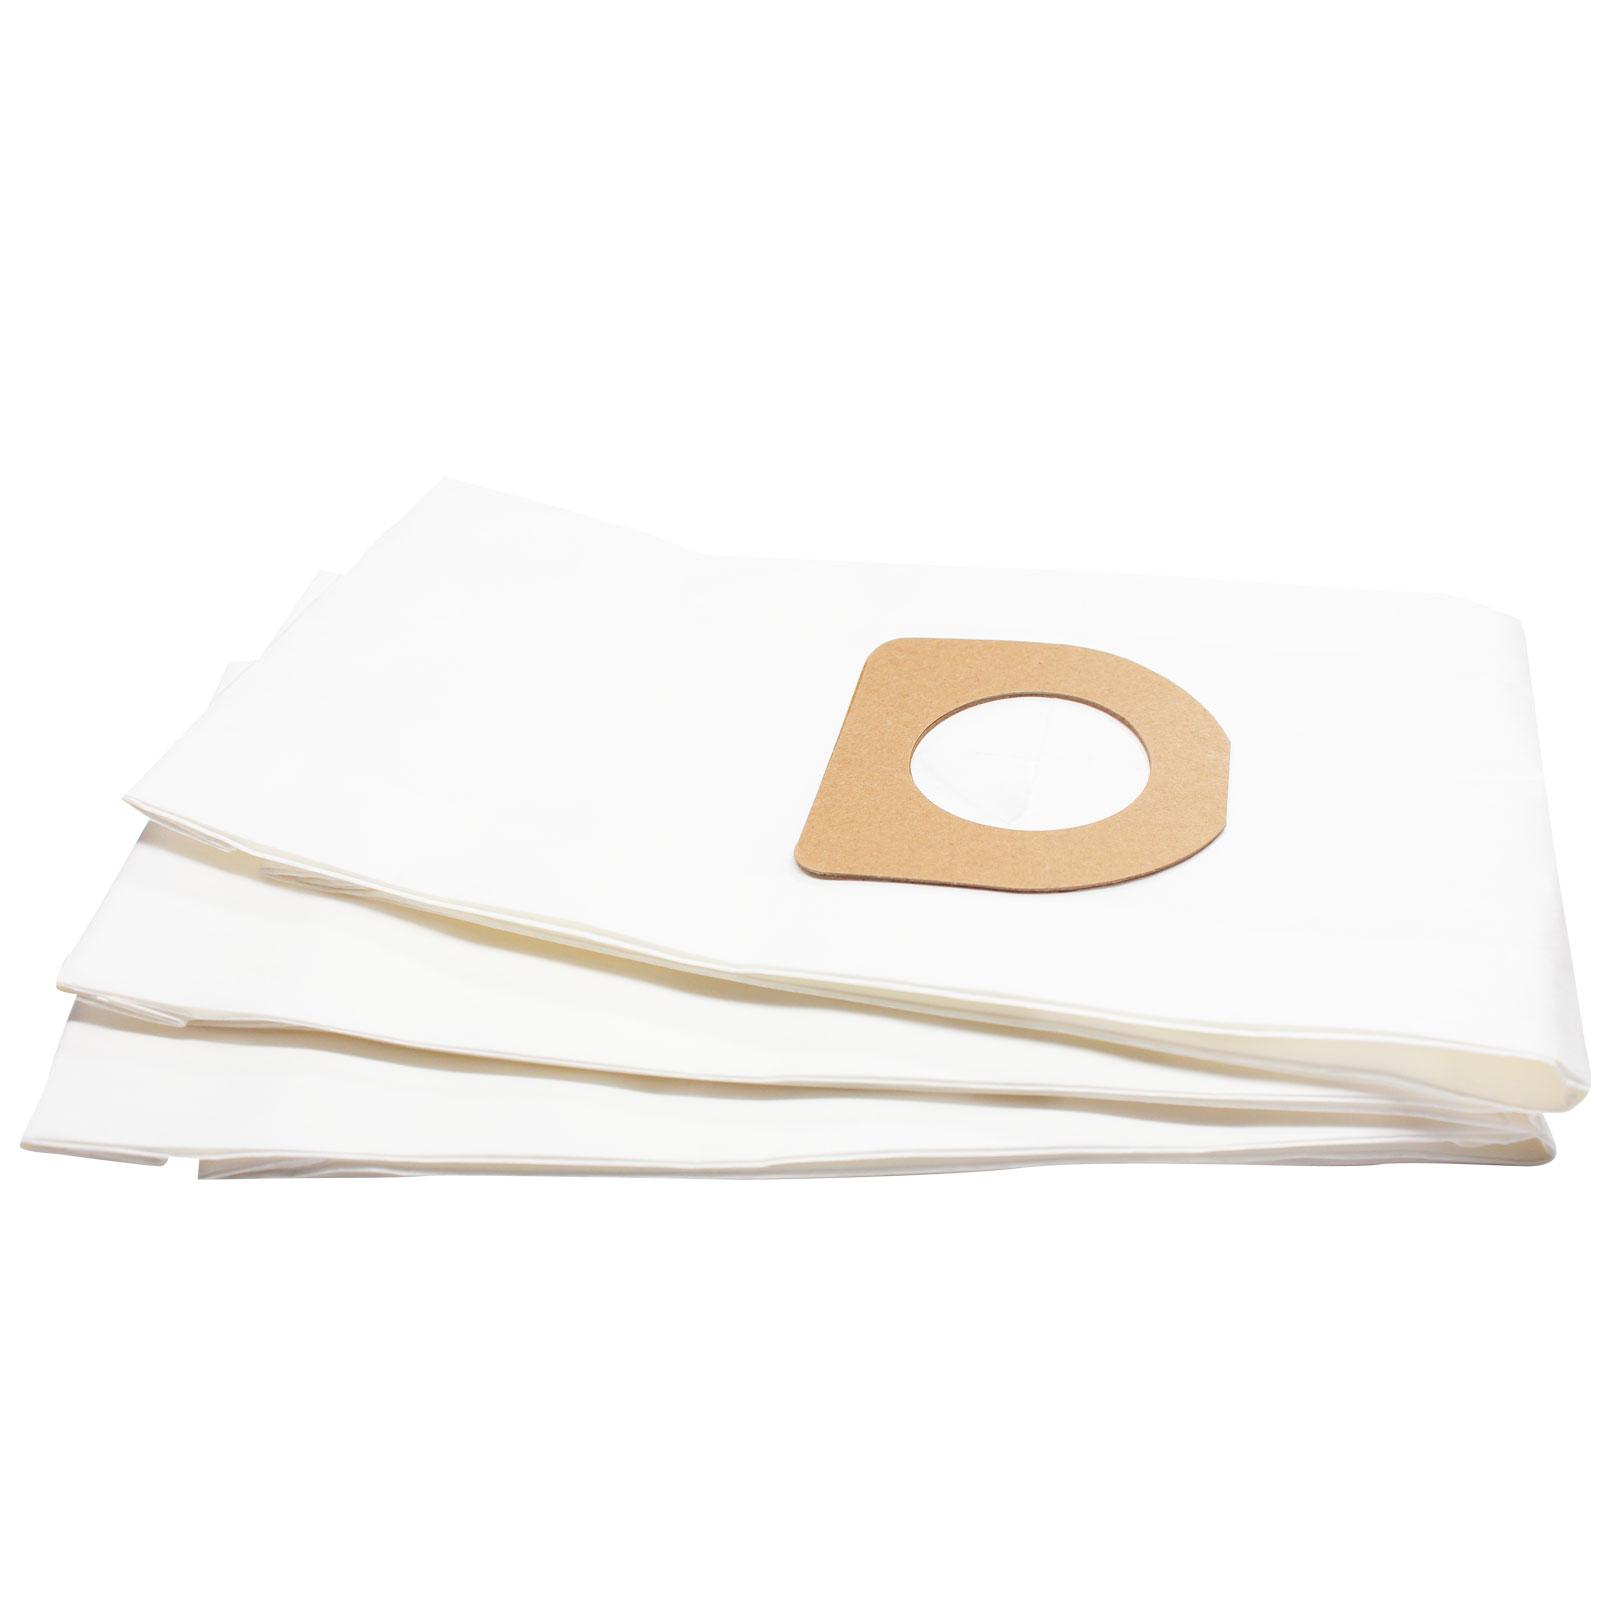 3 Replacement Hoover TurboPower 1500 Series Vacuum Bags - Compatible Hoover 4010100A, Type A Vacuum Bags - image 1 of 4